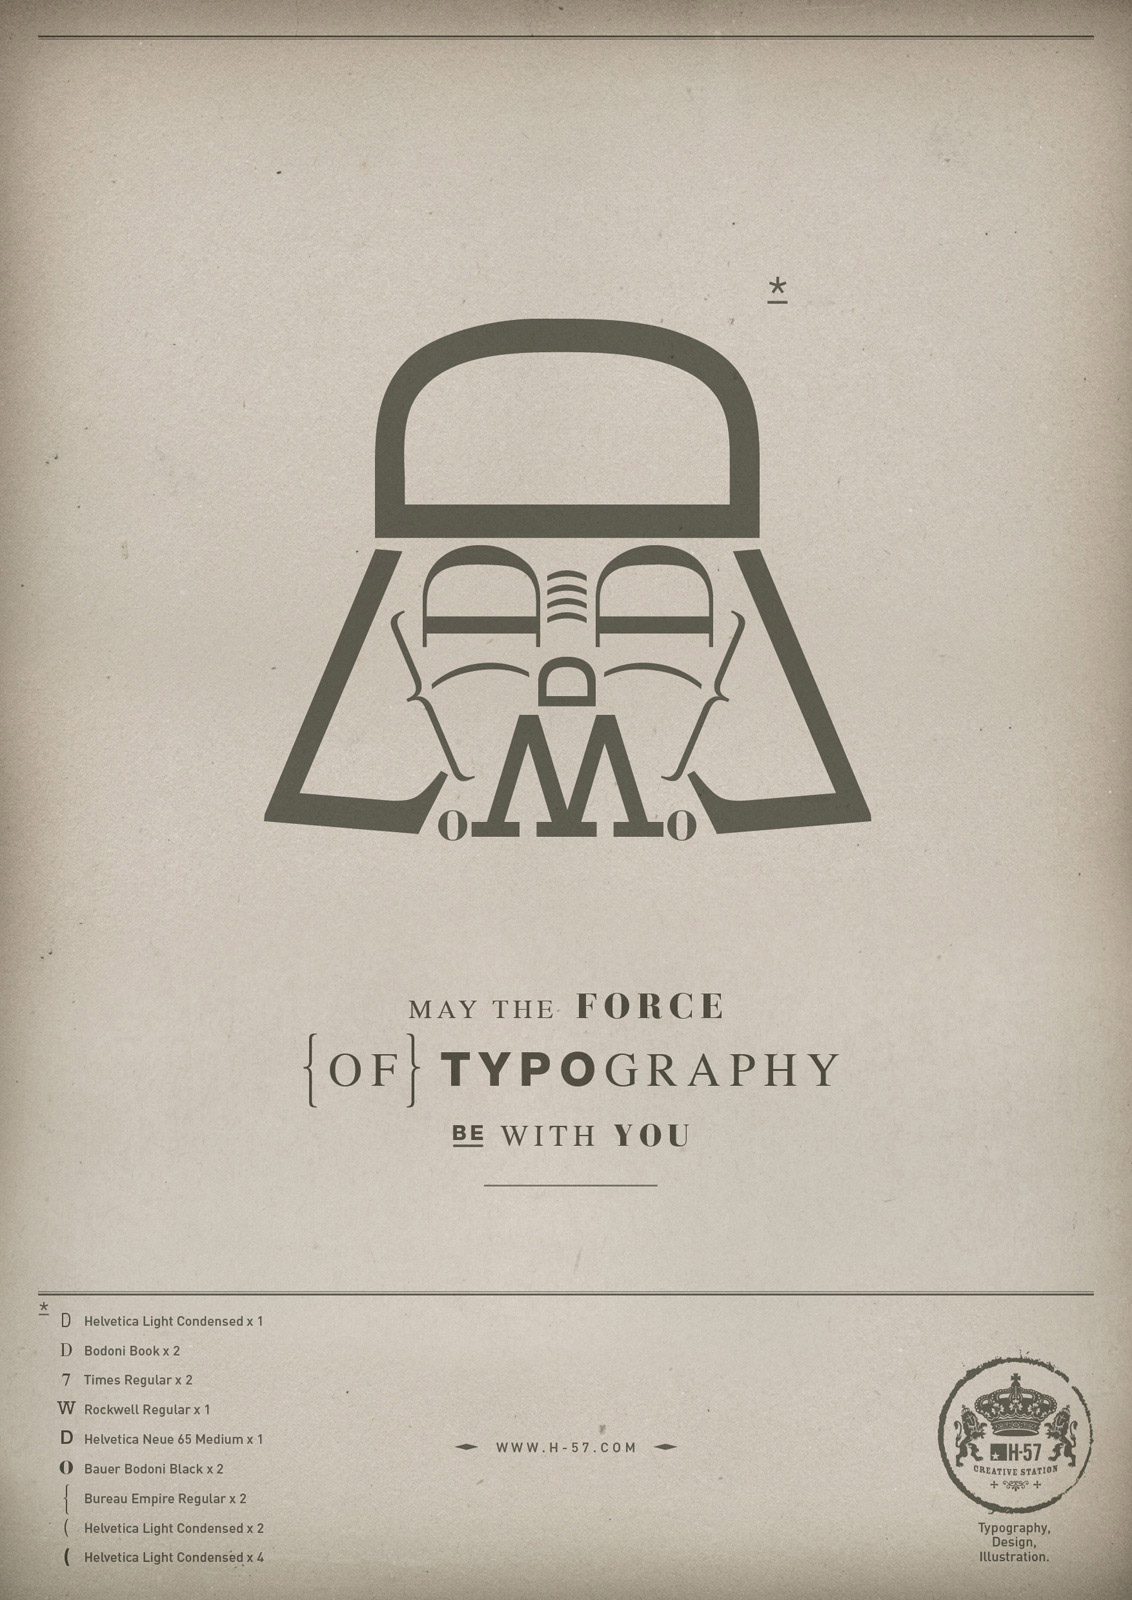 may-the-force-of-typography-be-with-you-darth-vader